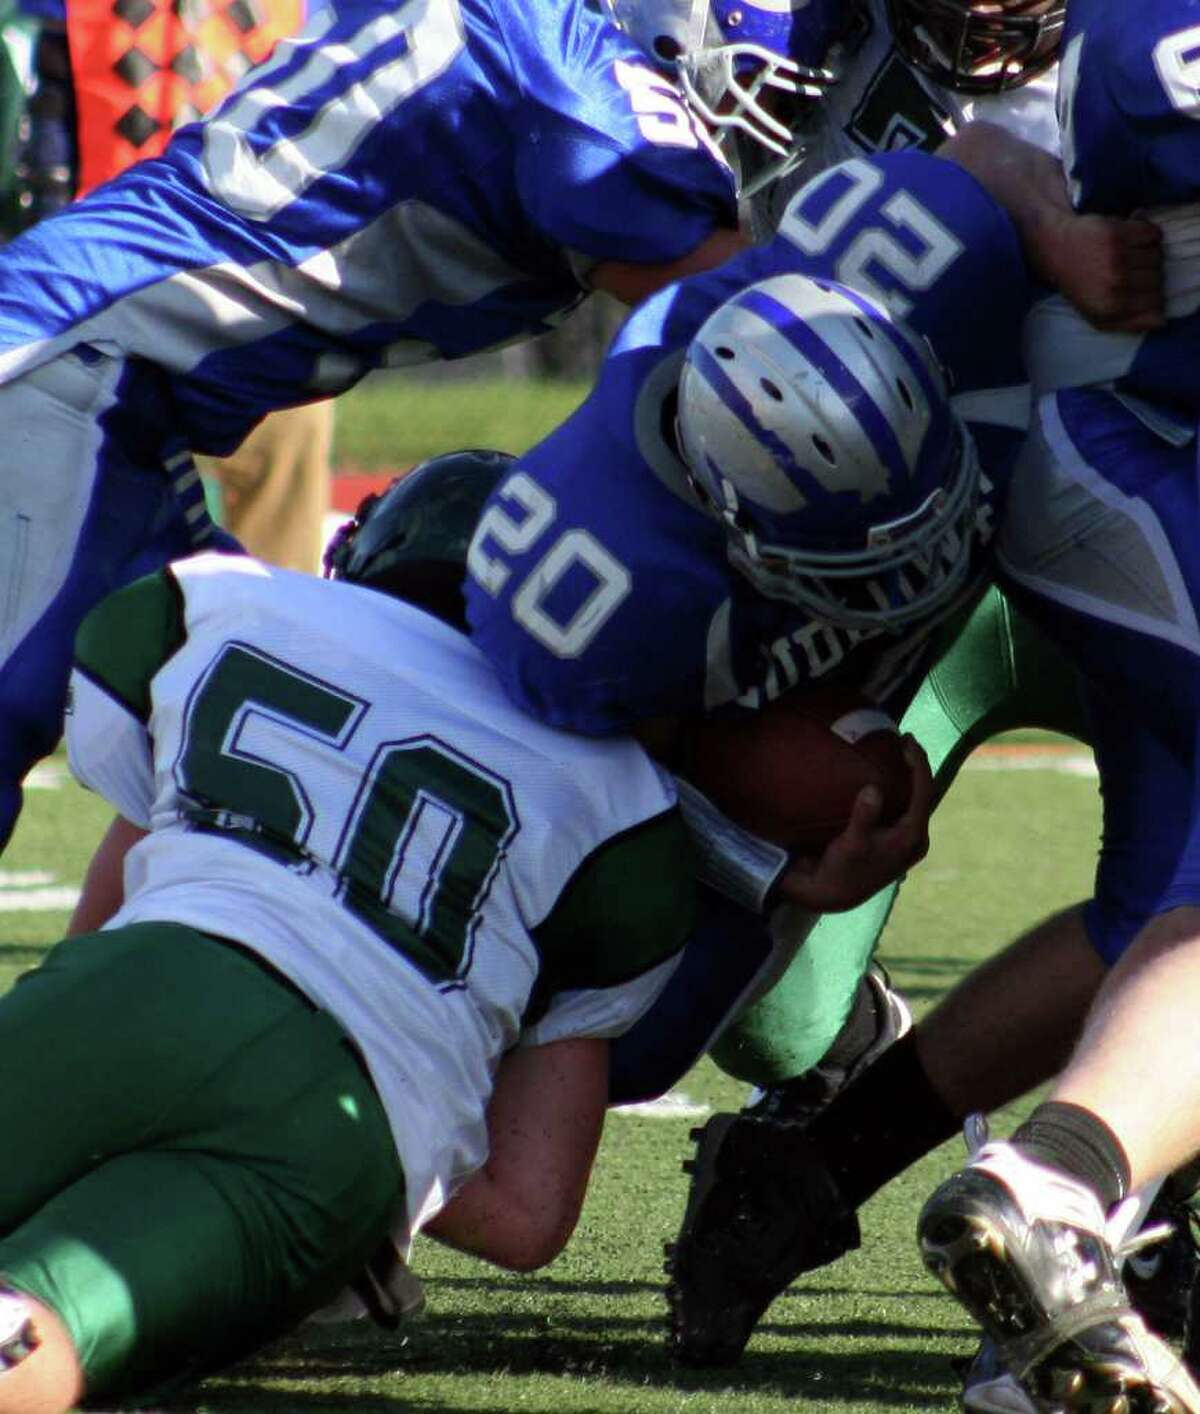 Norwalk linebacker Patrick Whalen tackles Ludlowe's Patrick Ferrio in the Bears' 24-13 win over the Falcons on Saturday, Oct. 16 at Taft Field.